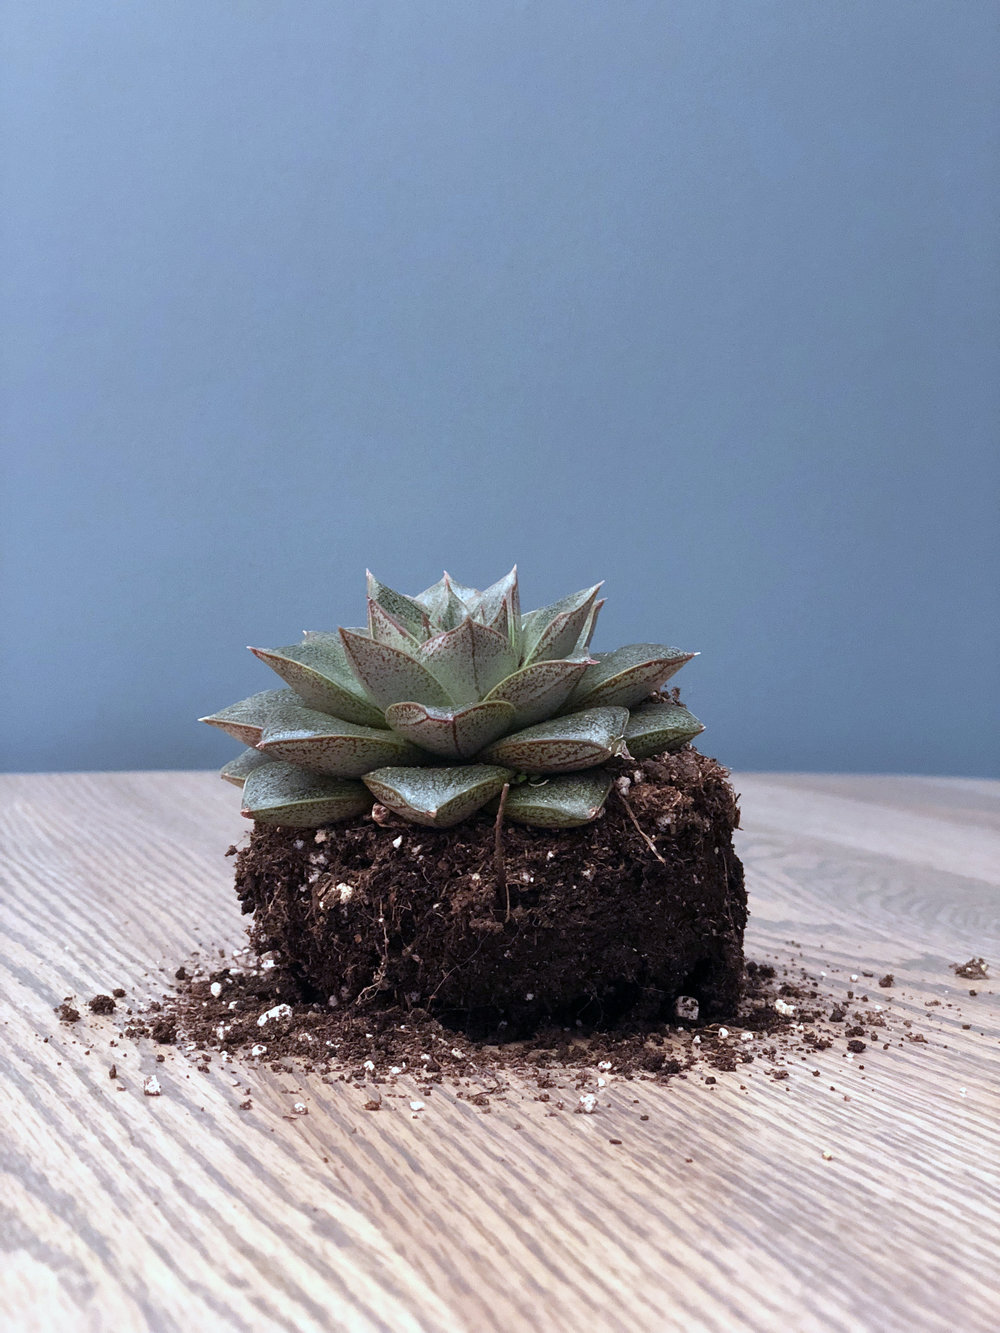 Echeveria - Echeveria purpusorumFull sun to bright light (more sun if they begin to stretch)Let the soil dry out completely between waterings. Try to avoid getting water on the center of the rosetteFertilize sparingly in the growing seasons